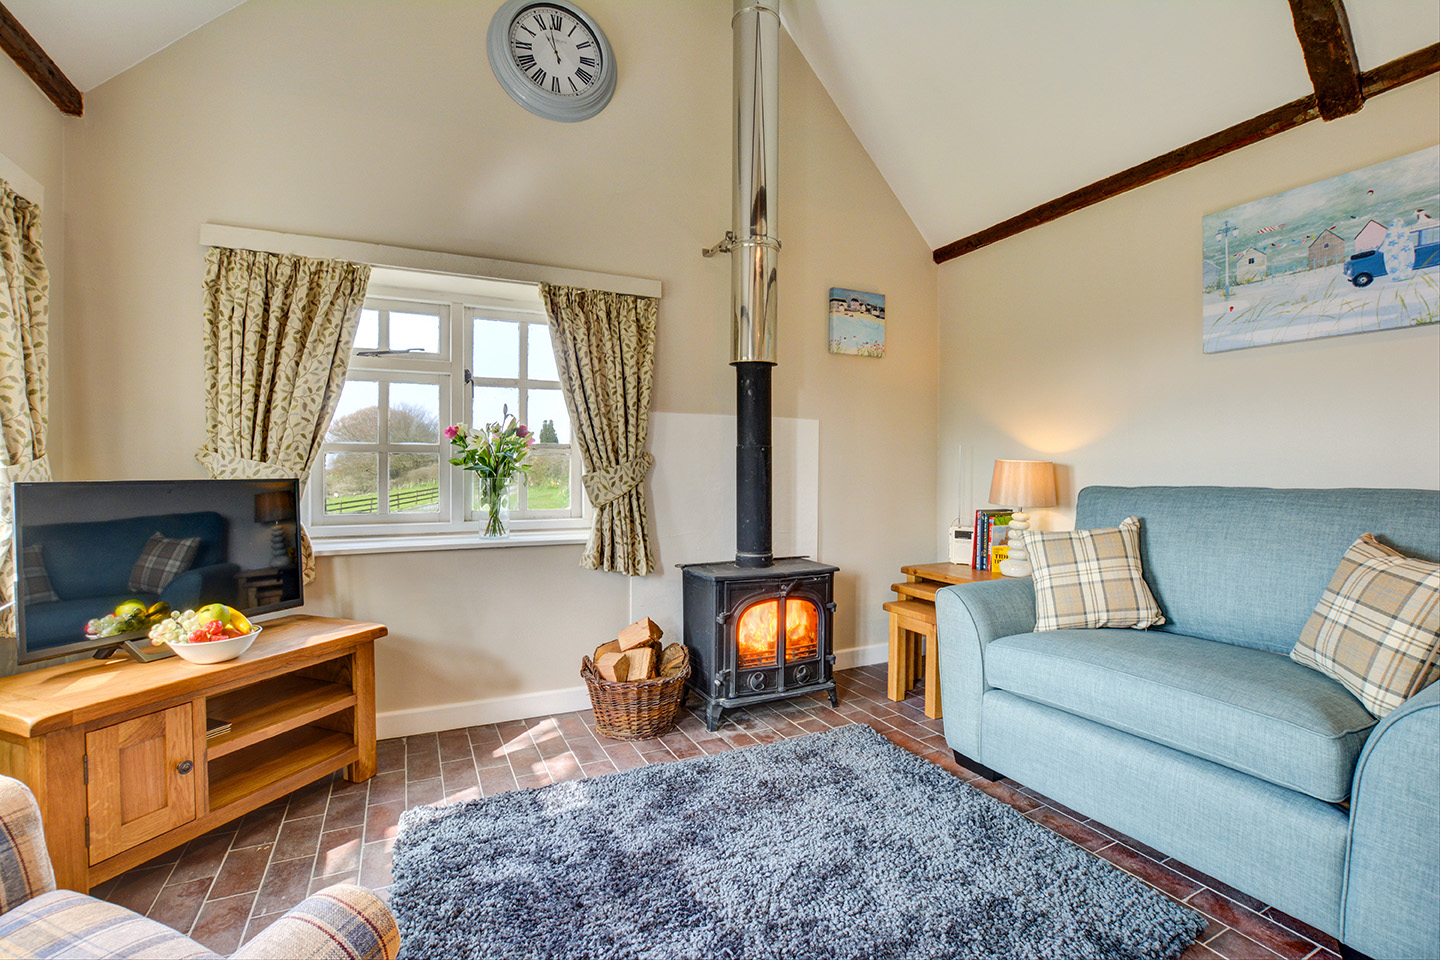 The lounge at Jingles luxury self catering holiday cottage at Penrose Burden in North Cornwall near Bodmin Moor01.jpg